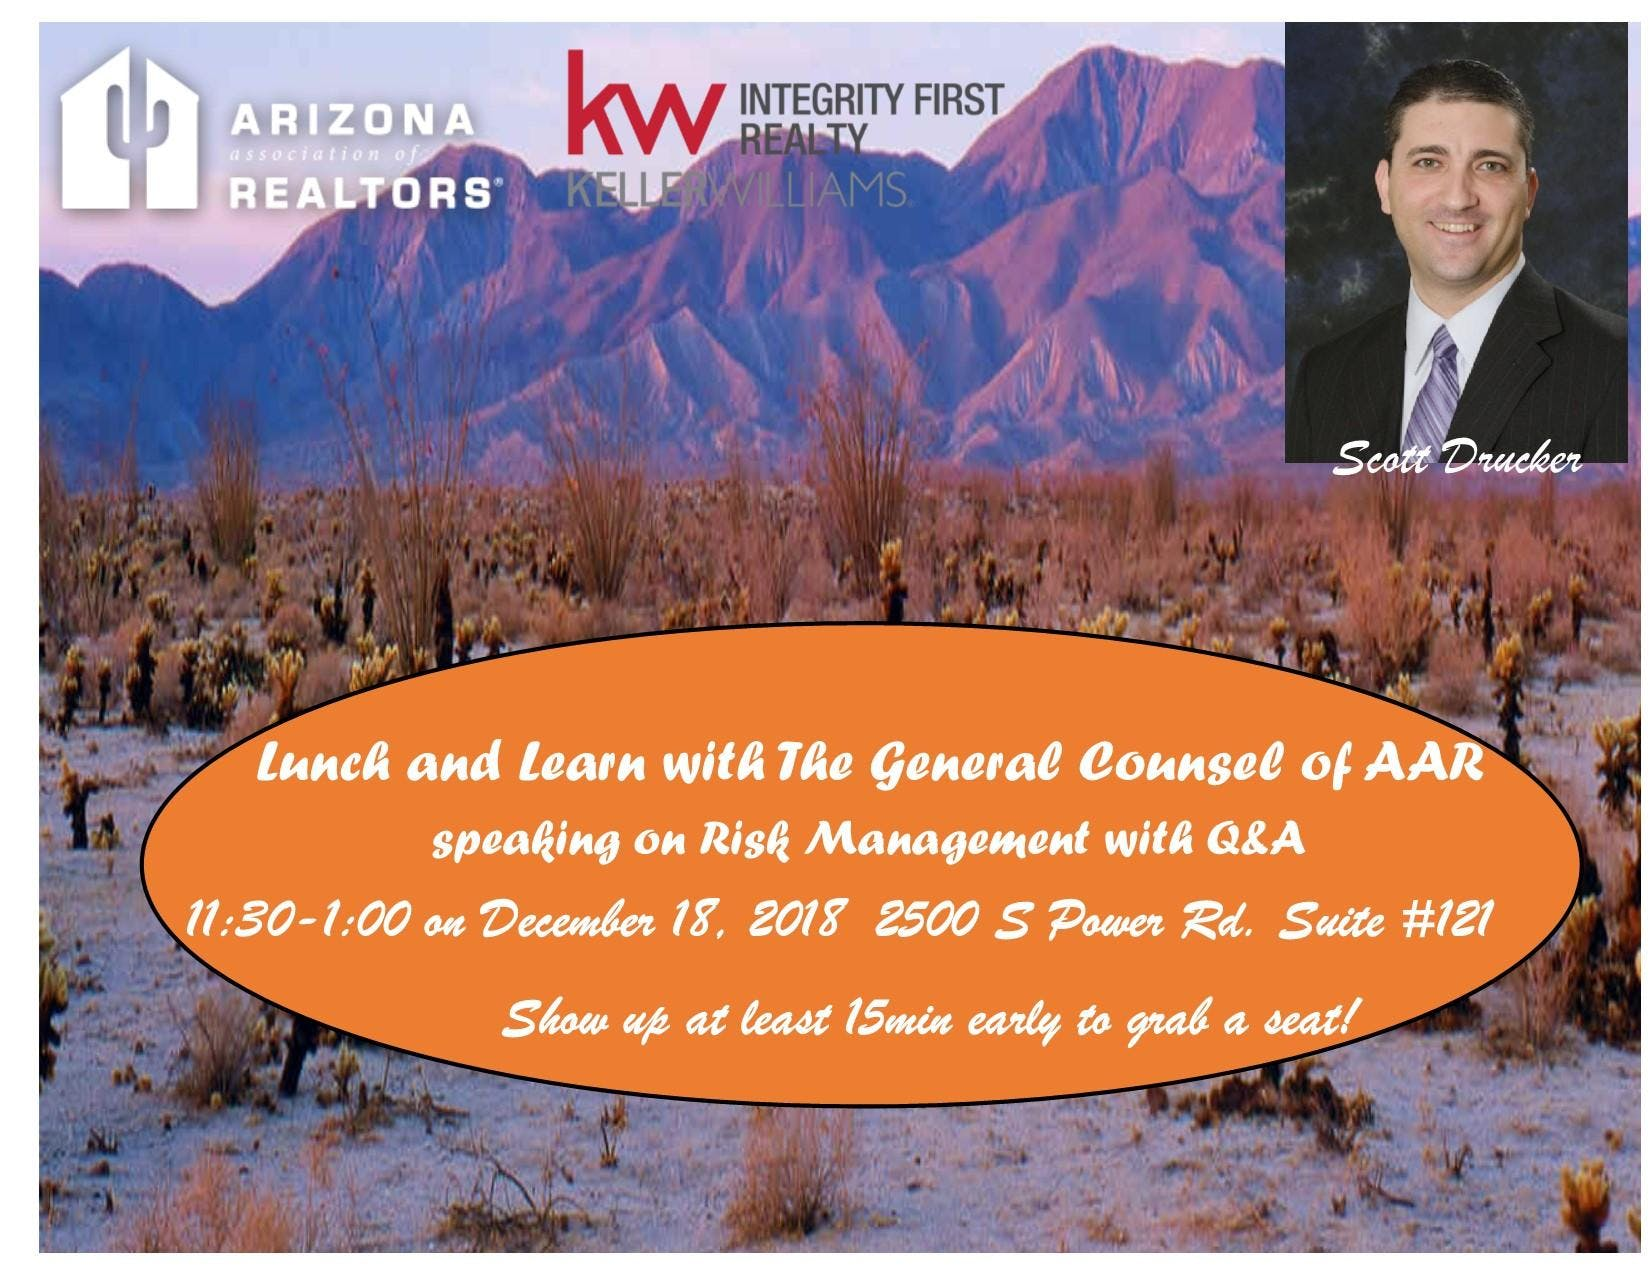 Lunch and Learn with AAR Scott Drucker